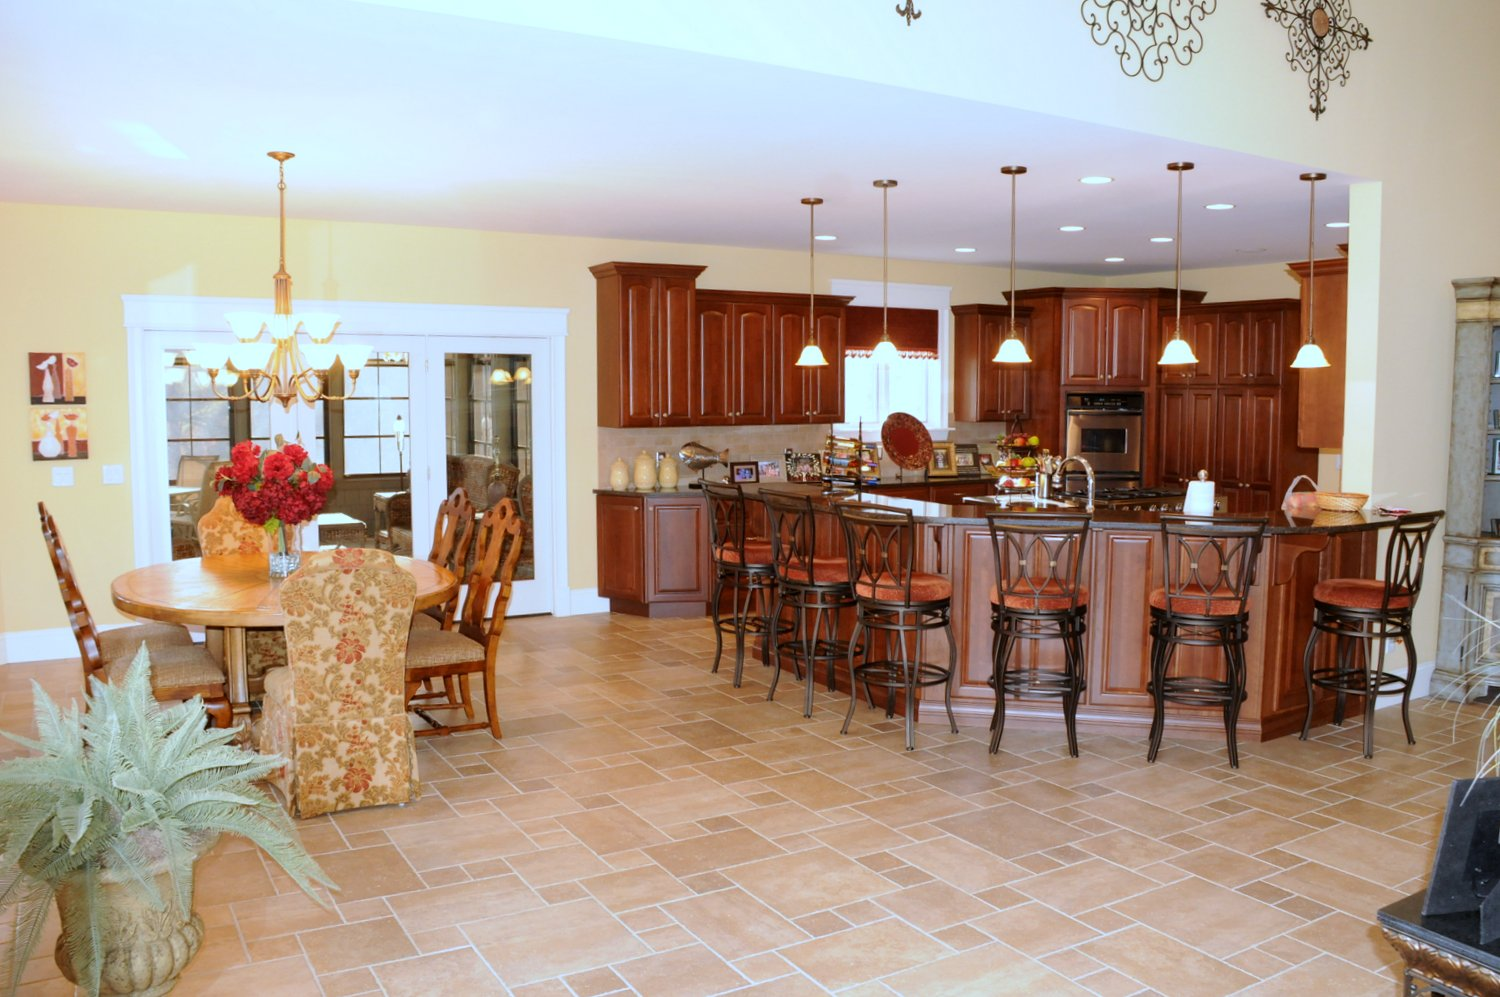 Spacious kitchen with center island and beautiful tile flooring throughout